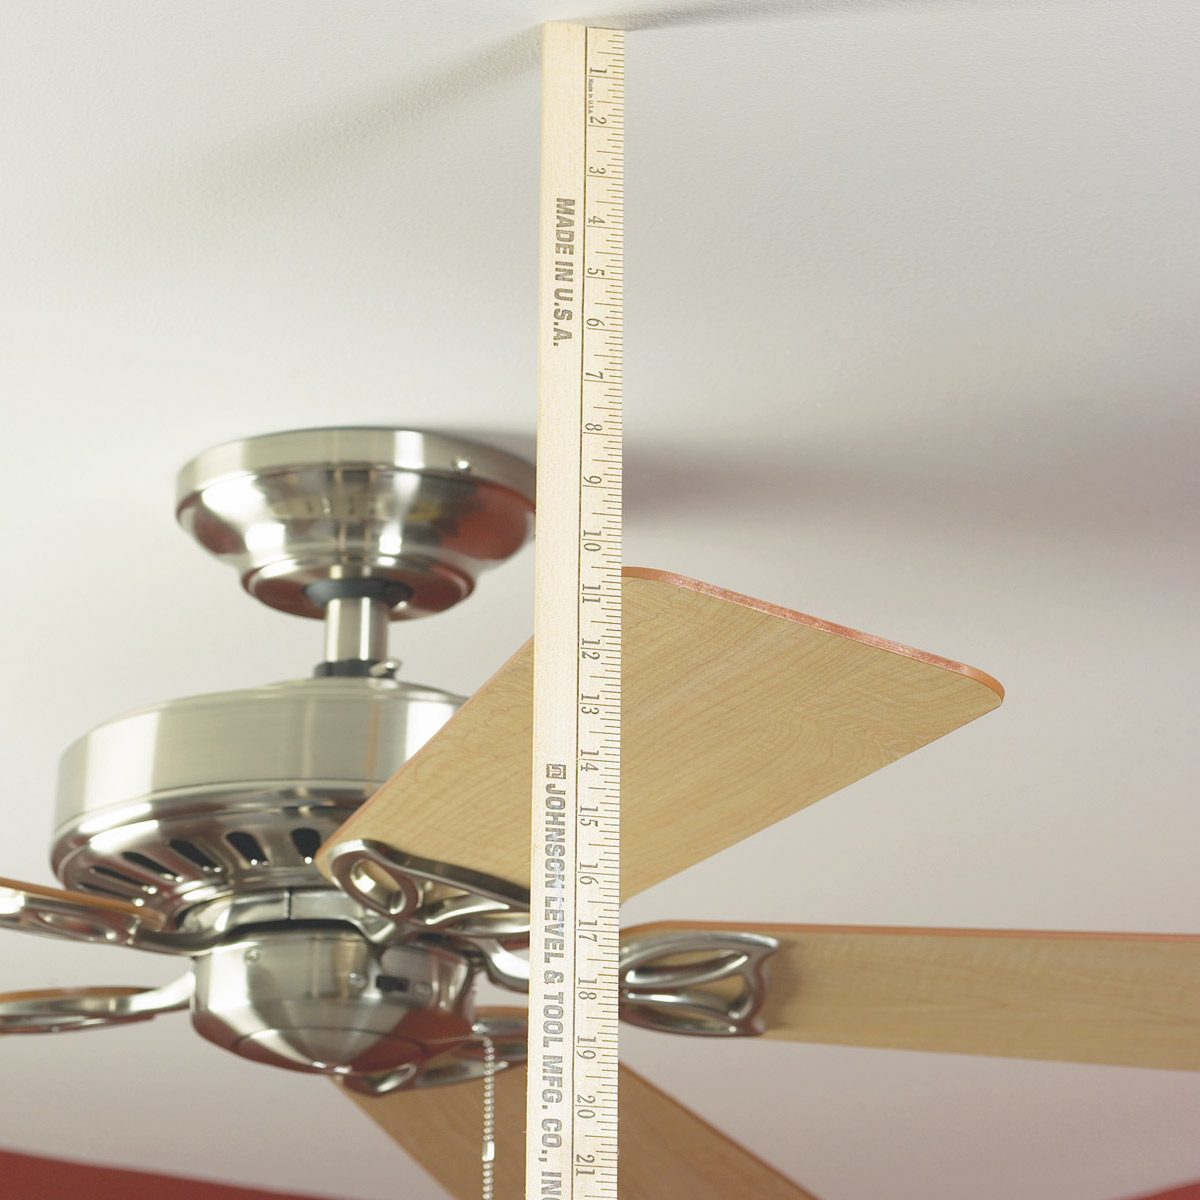 Ceiling Fan Size For Garage How To Balance A Ceiling Fan The Family Handyman